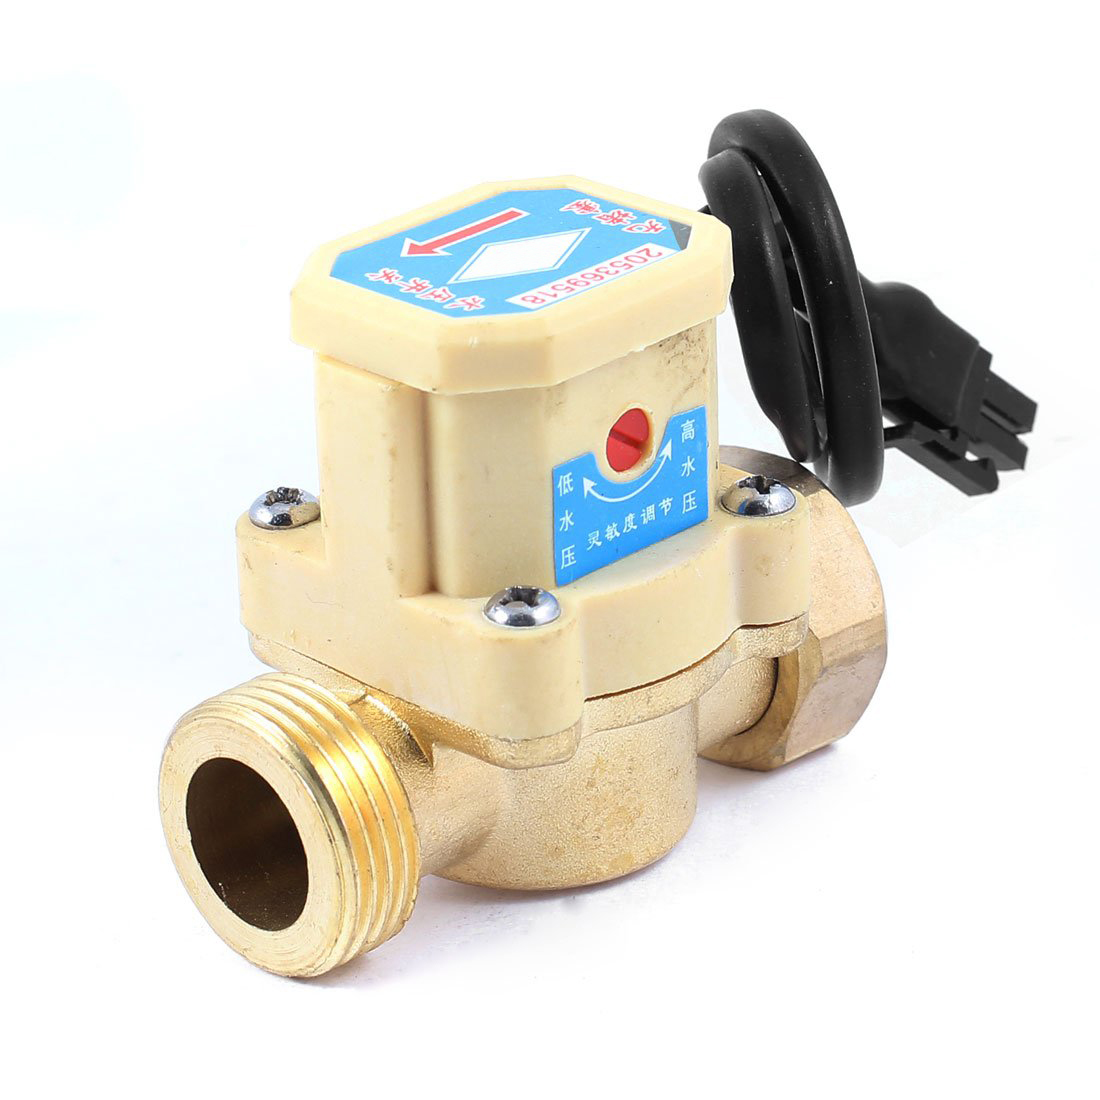 MYLB-26mm 3/4 PT Thread Connector 120W Pump Water Flow Sensor Switch 1 2 pt male thread 90w power electric pressure flow switch for water pump